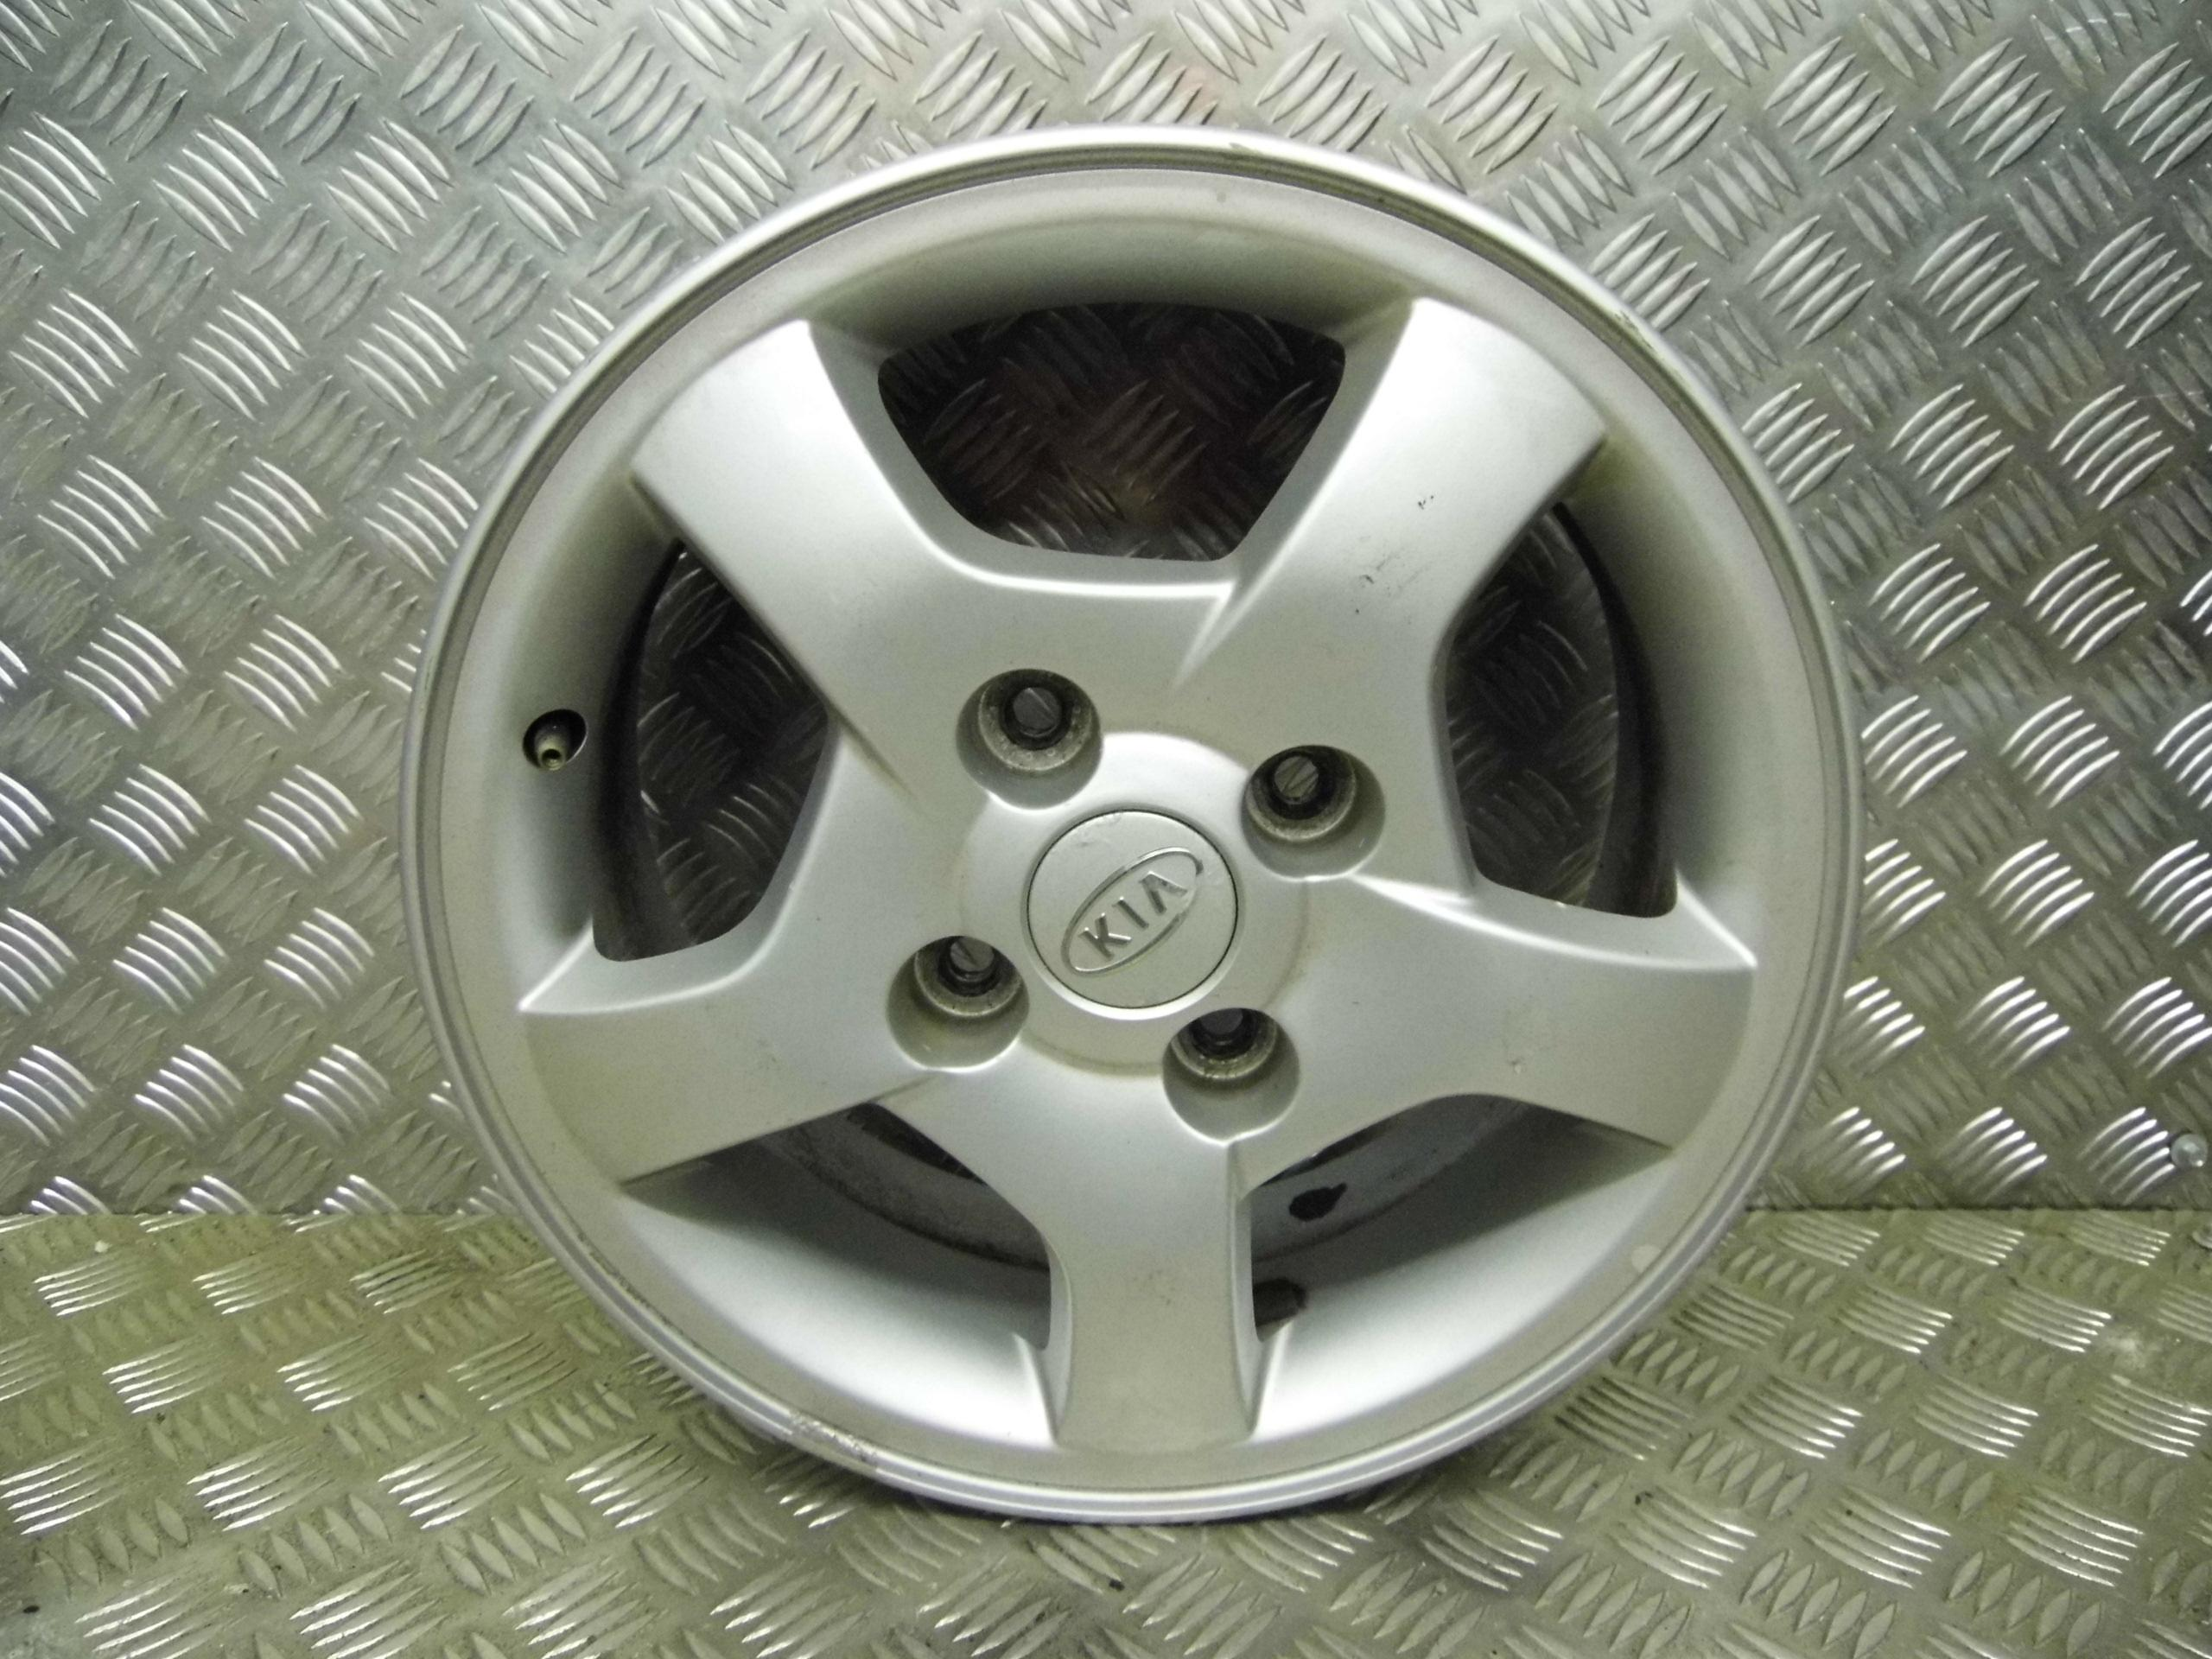 Used 2006 56 Kia Cerato 6j X 15 Inch 4 Stud Alloy Wheel 1 Fuse Box Location